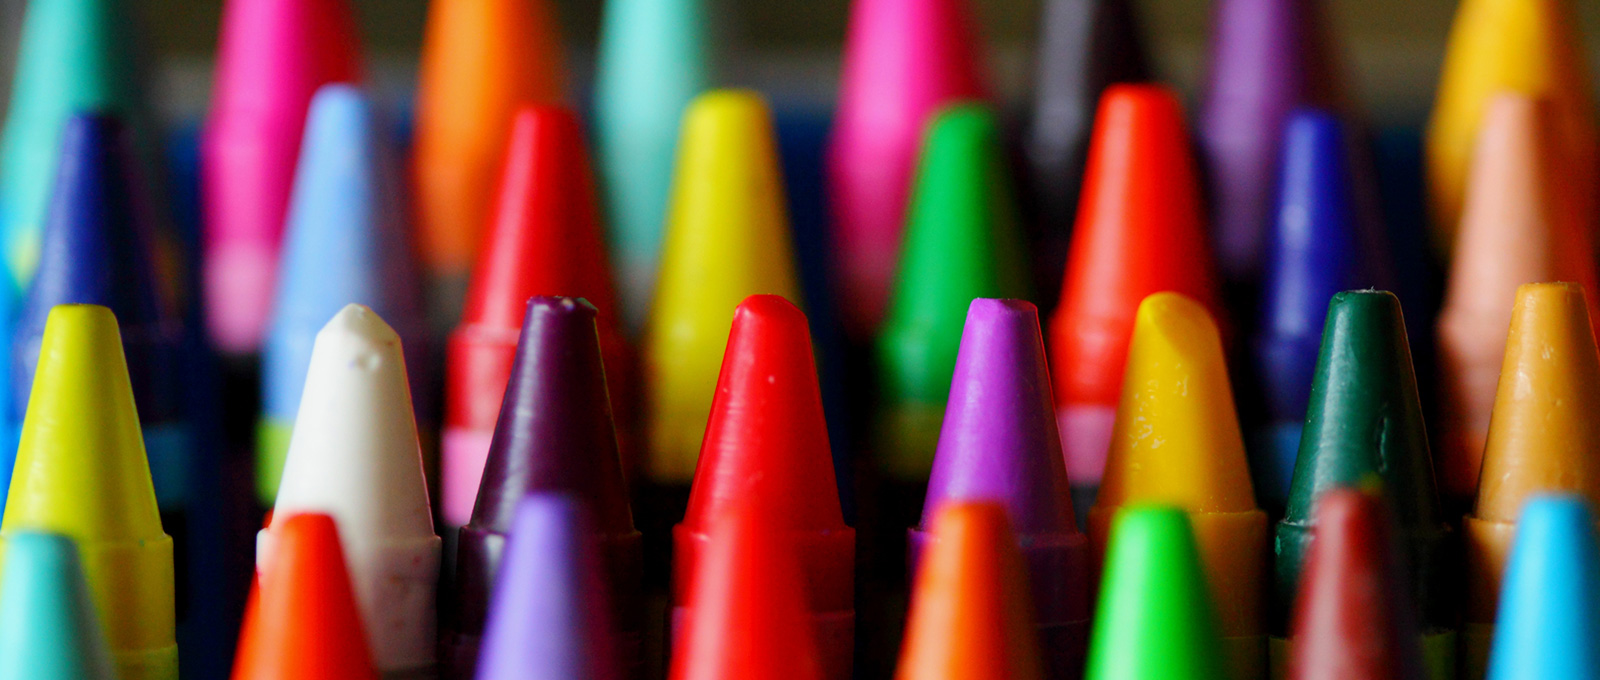 crayola is vowing to retire one crayon from its iconic box of 24